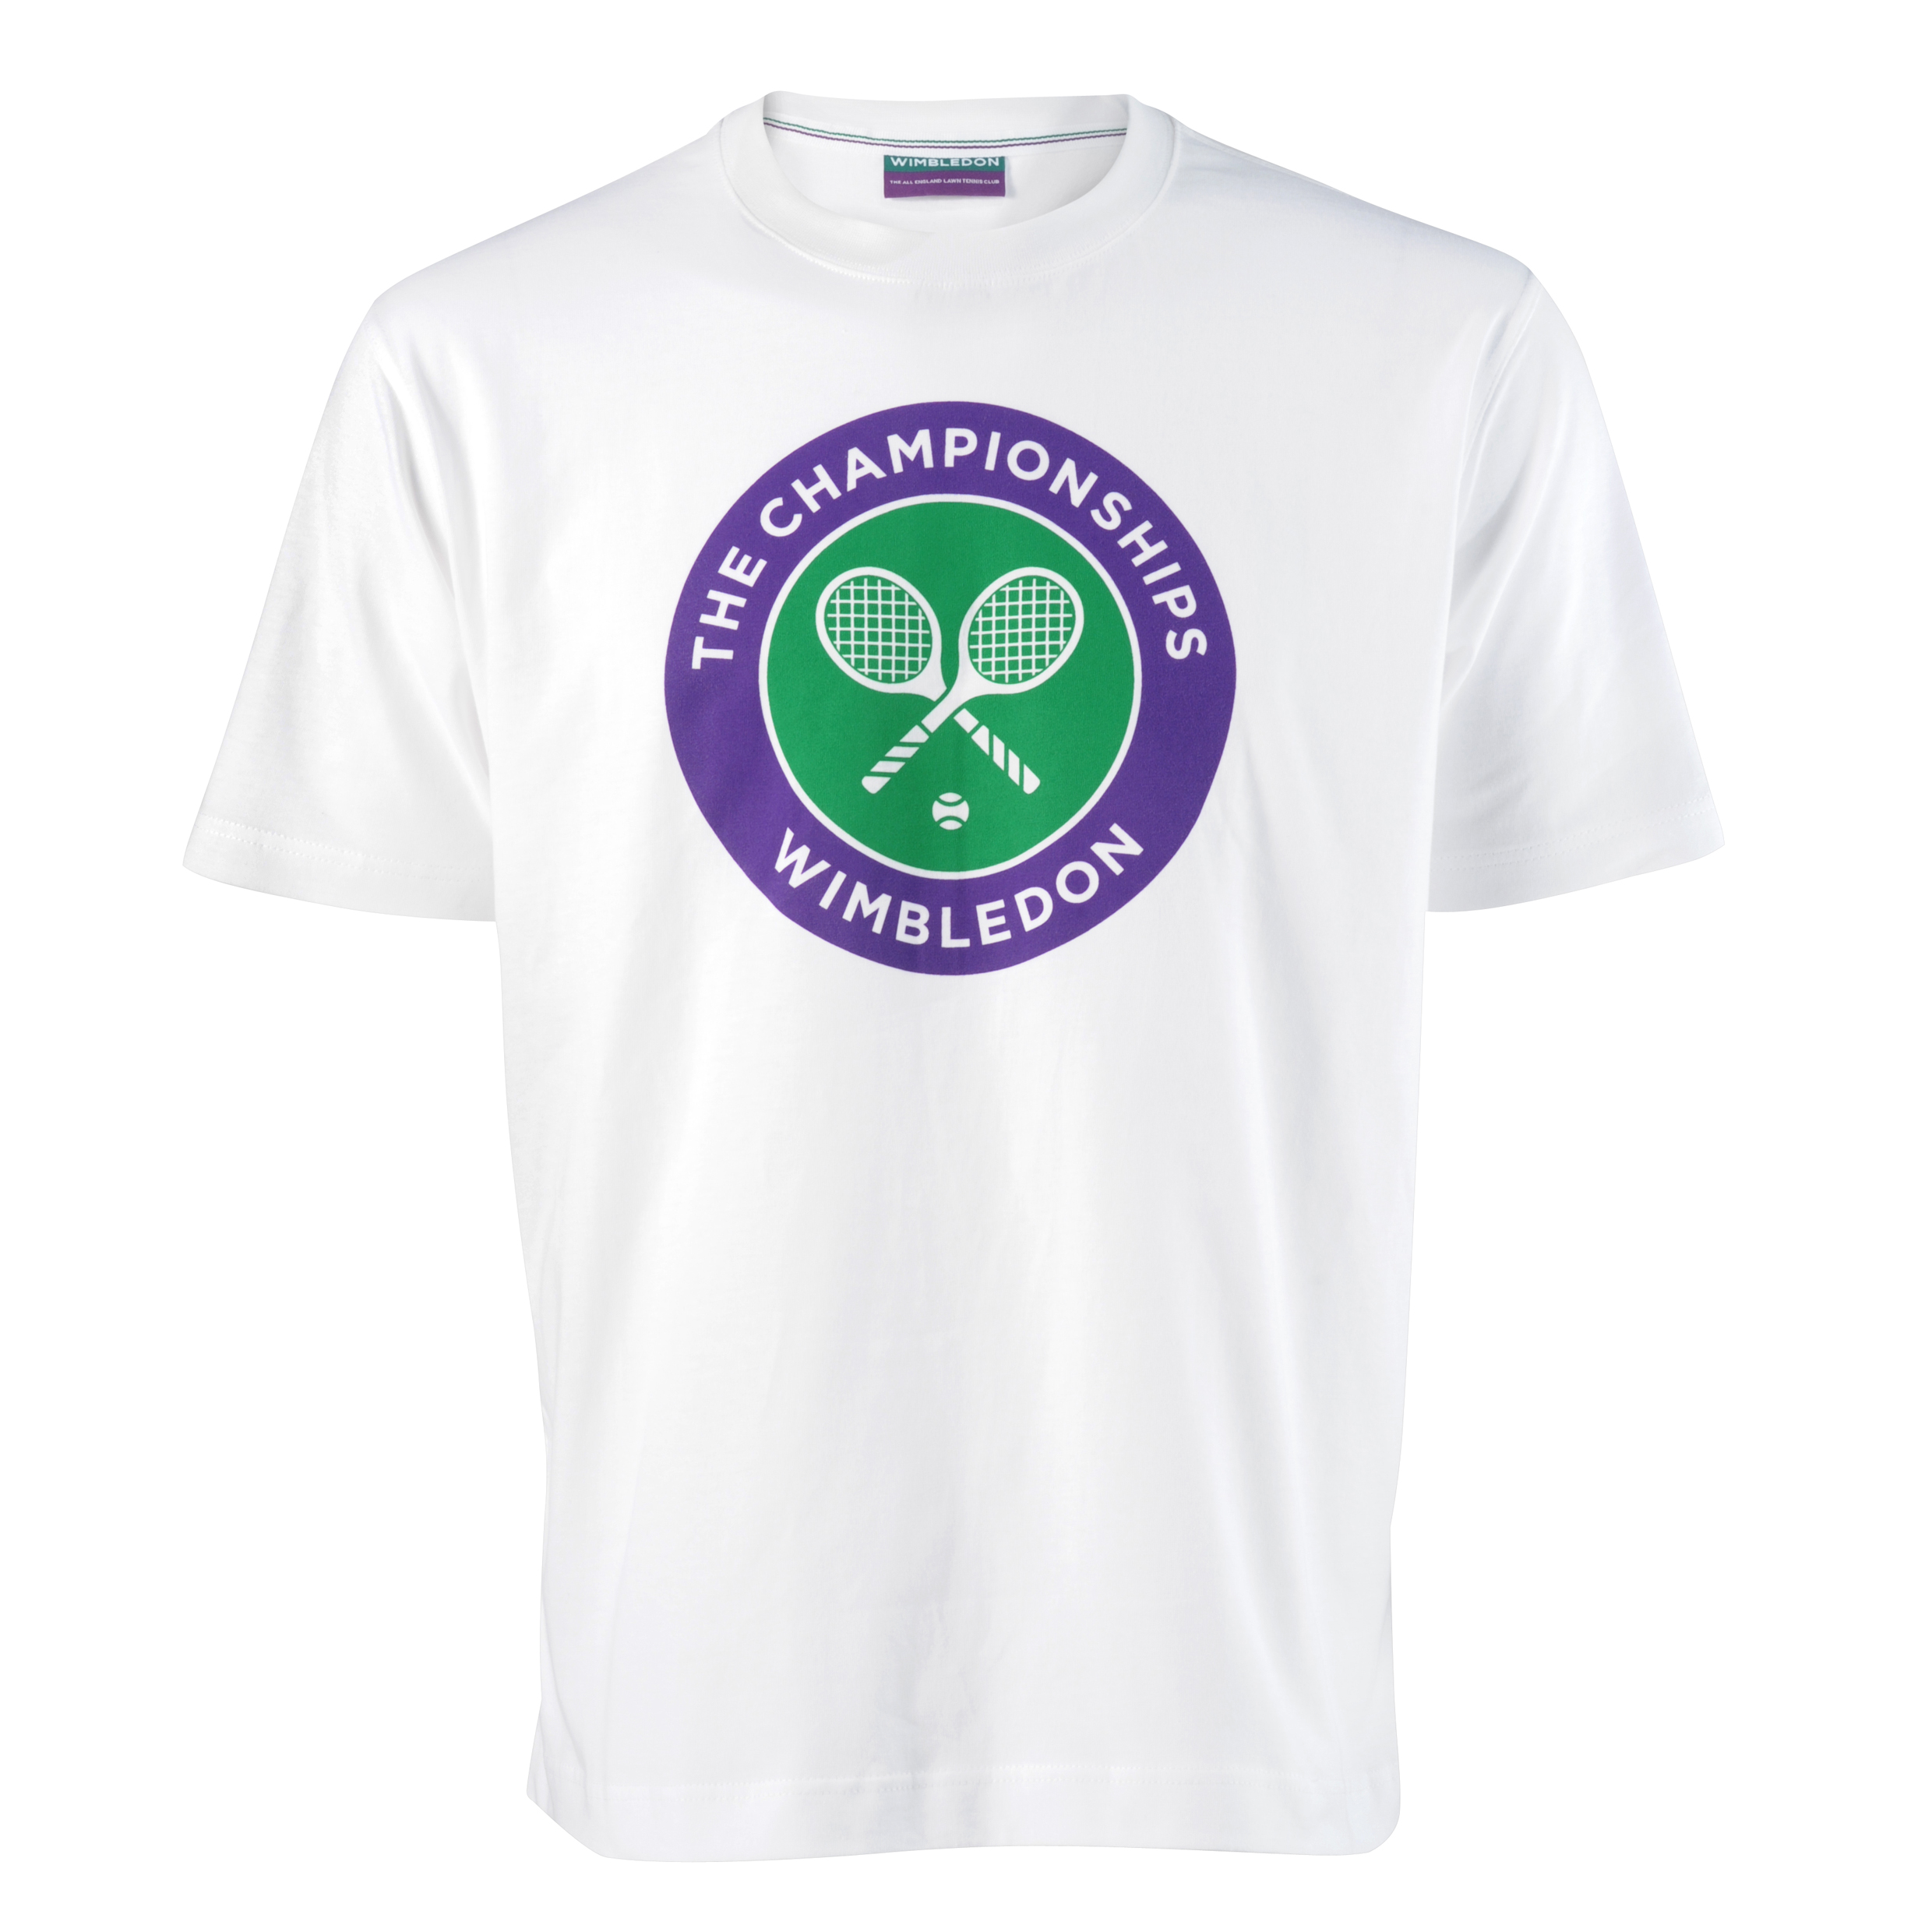 Wimbledon Crossed Rackets Print T-Shirt White